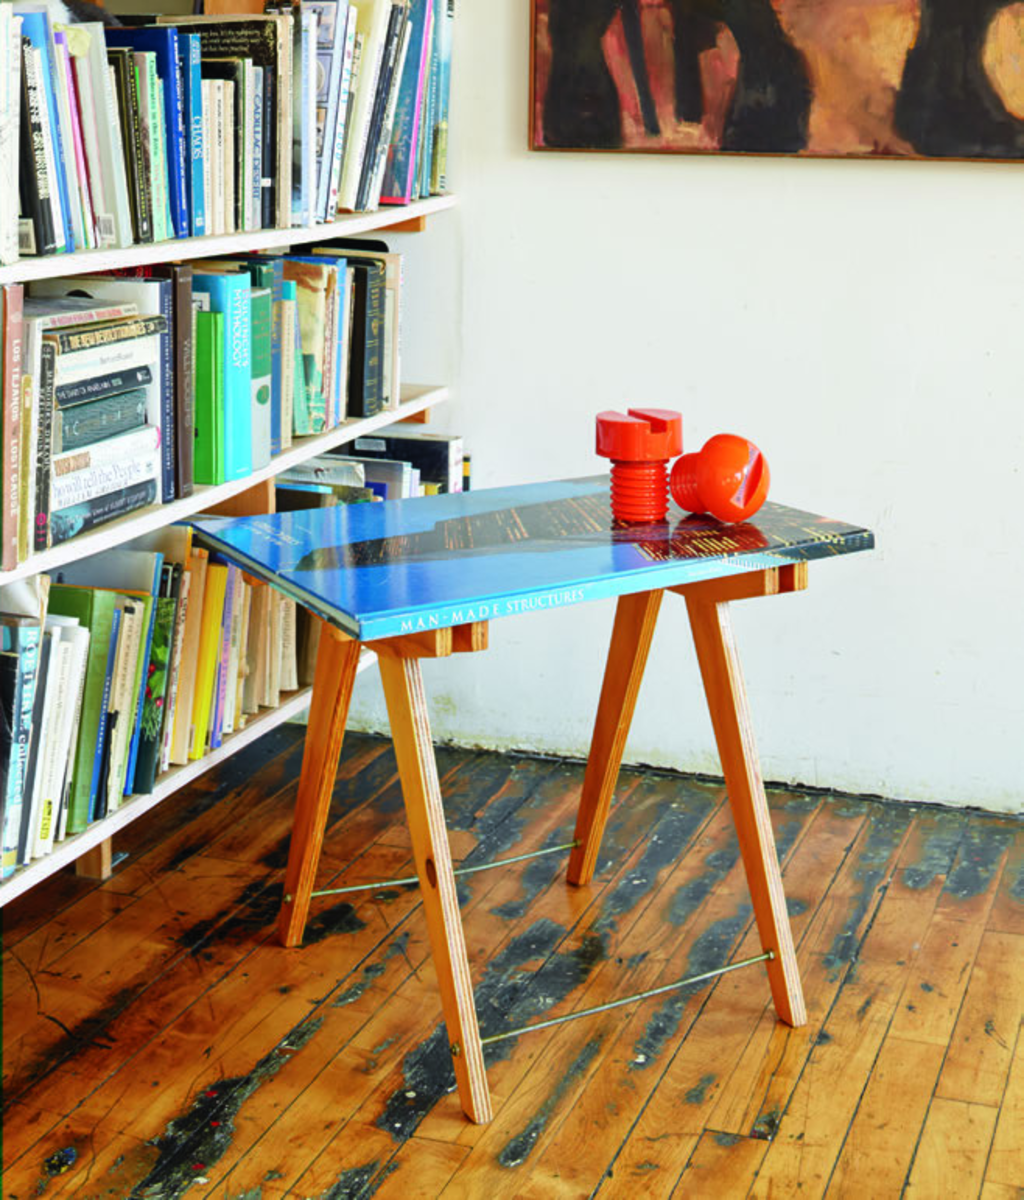 How to Turn a Large Book Into a DIY Coffee Table